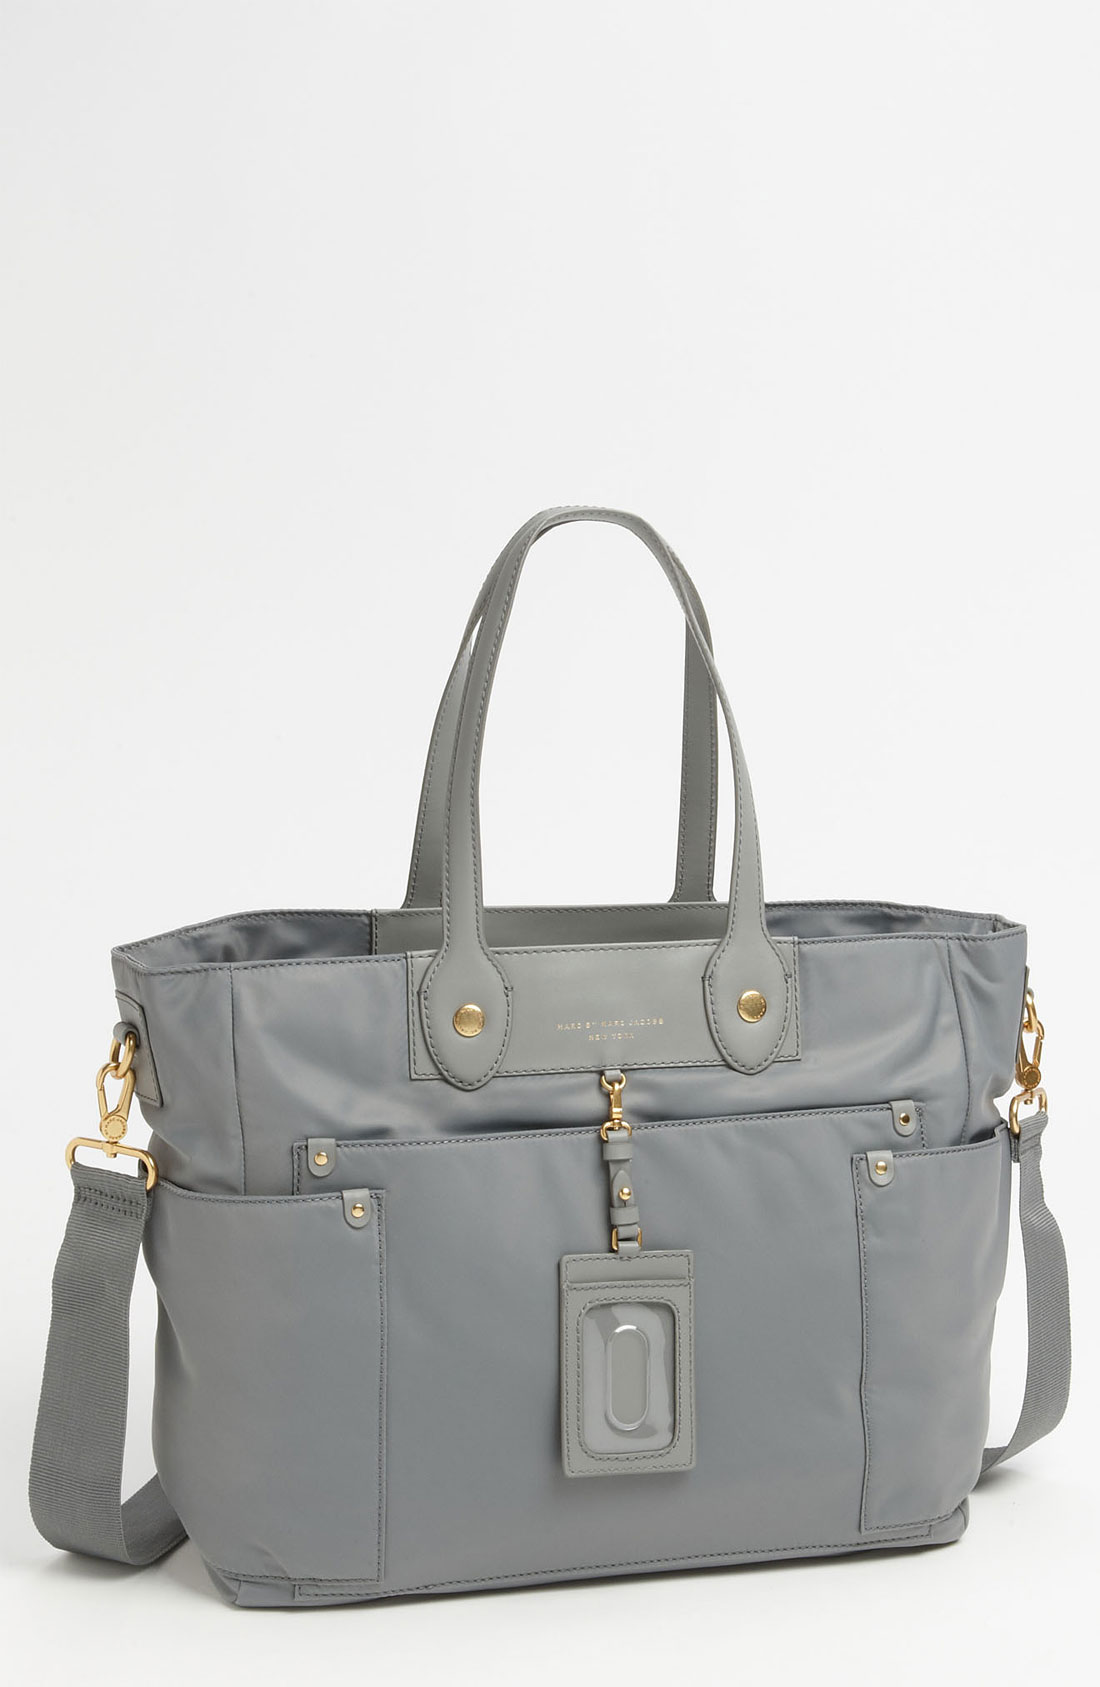 marc by marc jacobs preppy nylon elizababy diaper bag in gray storm cloud lyst. Black Bedroom Furniture Sets. Home Design Ideas